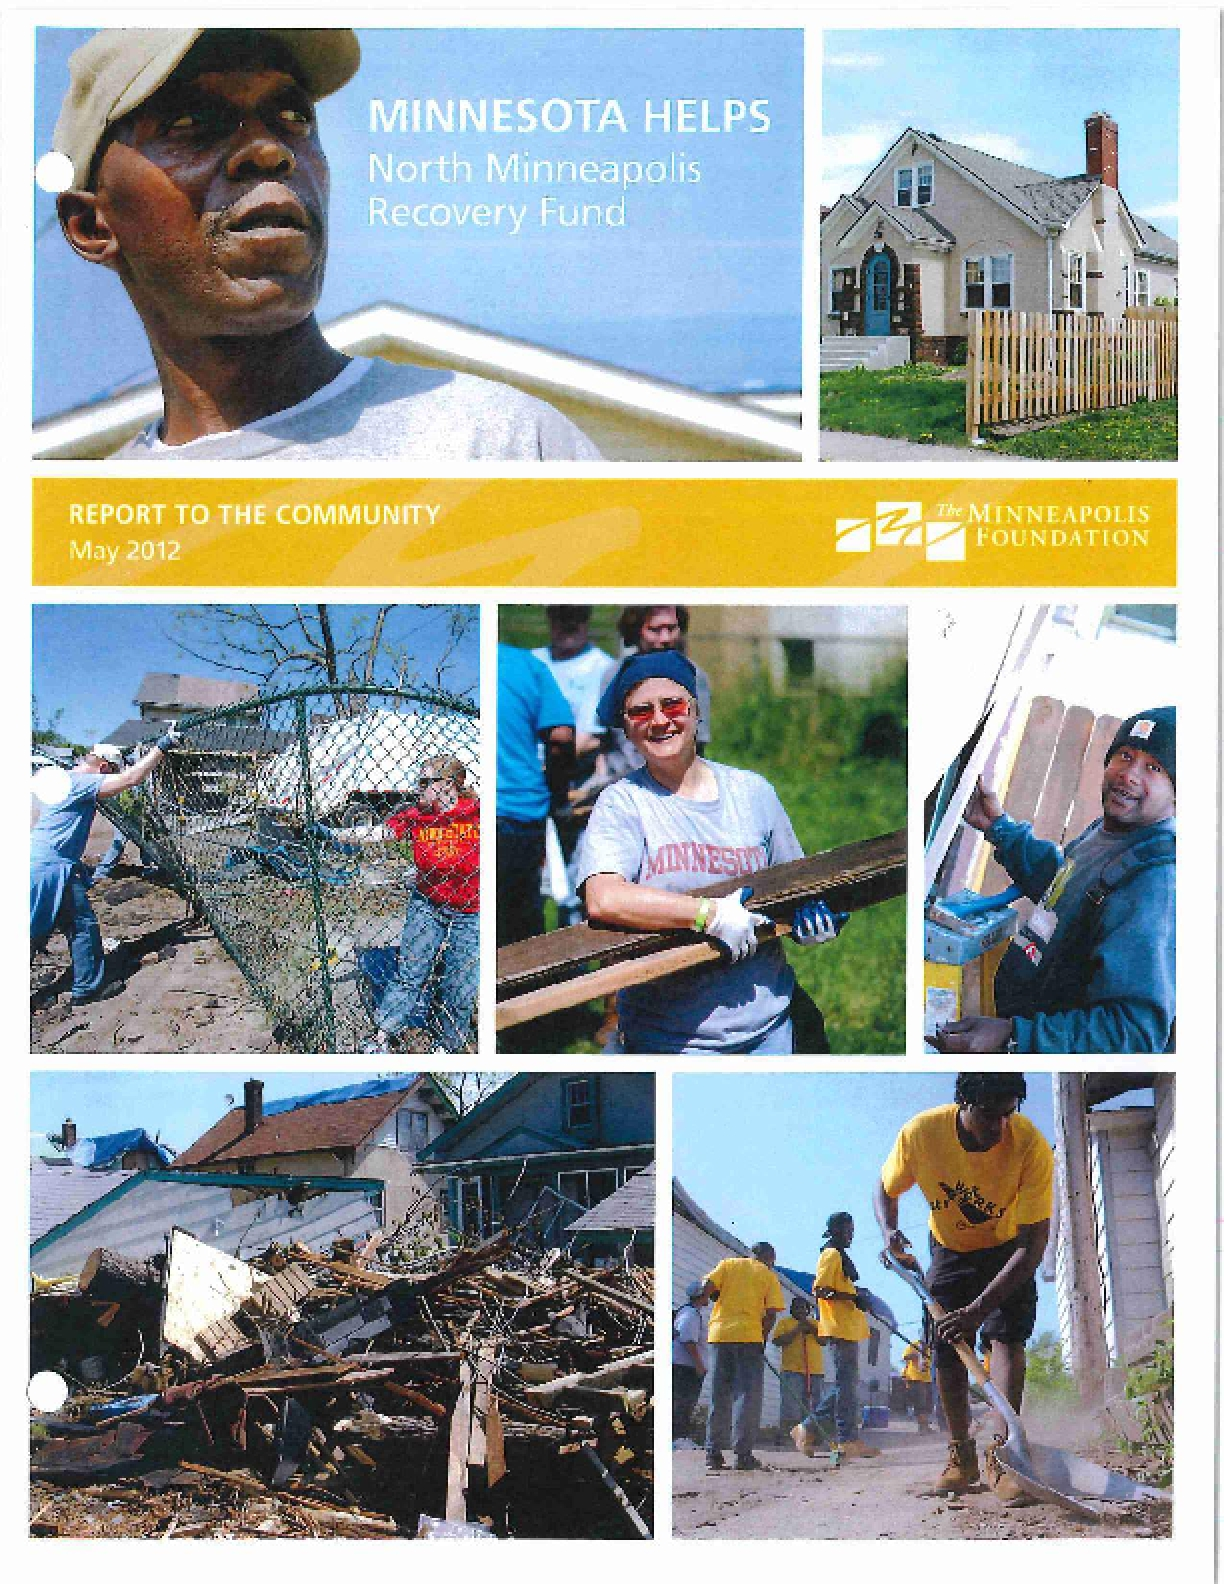 Minnesota Helps: North Minneapolis Recovery Fund - Report to the Community